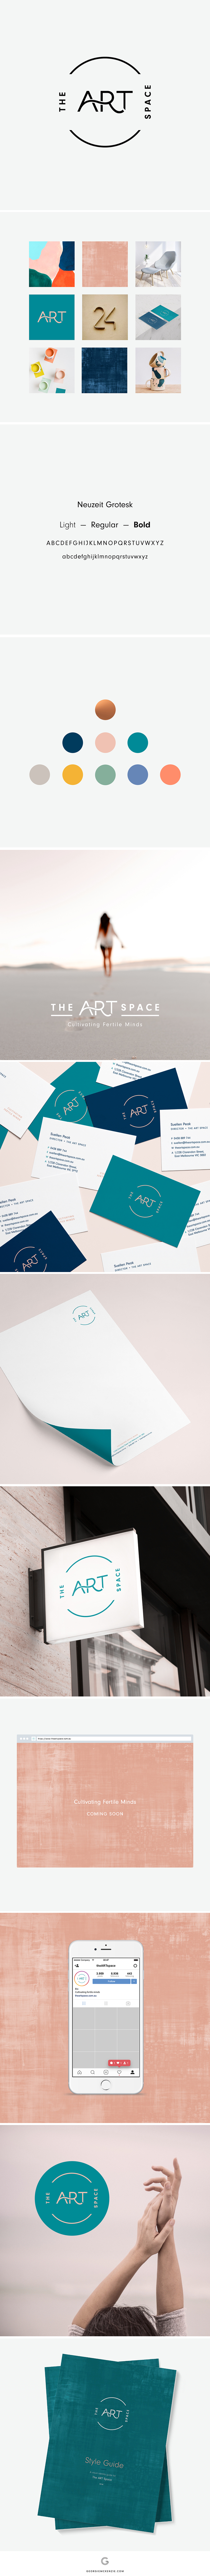 Georgie McKenzie Graphic Design Portfolio — The ART Space Branding Stationery